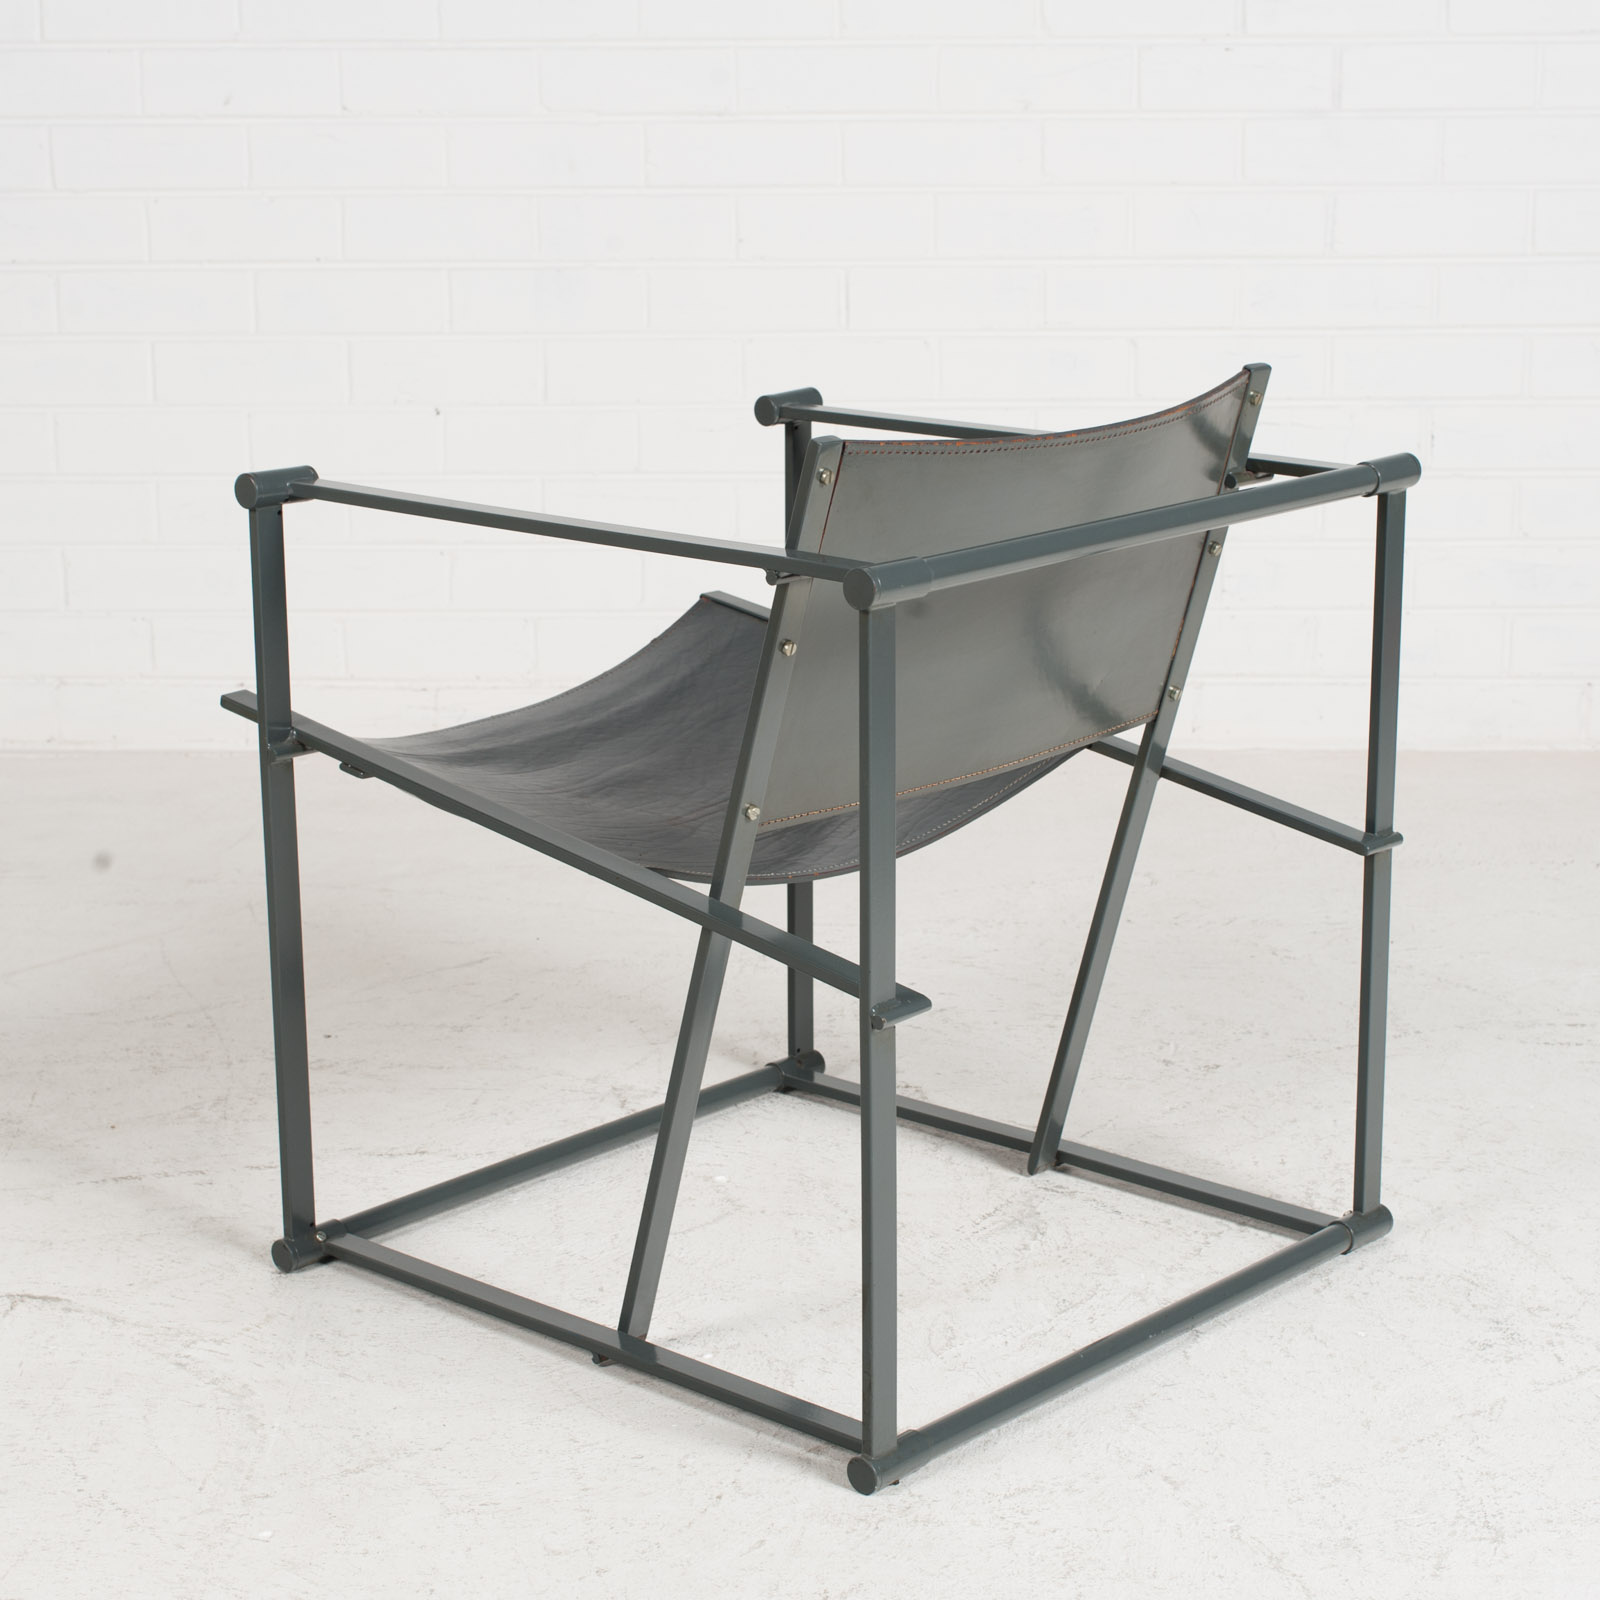 Model Fm60 Cubic Chair By Radboud Van Beekum For Pastoe 1980s Netherlands 5